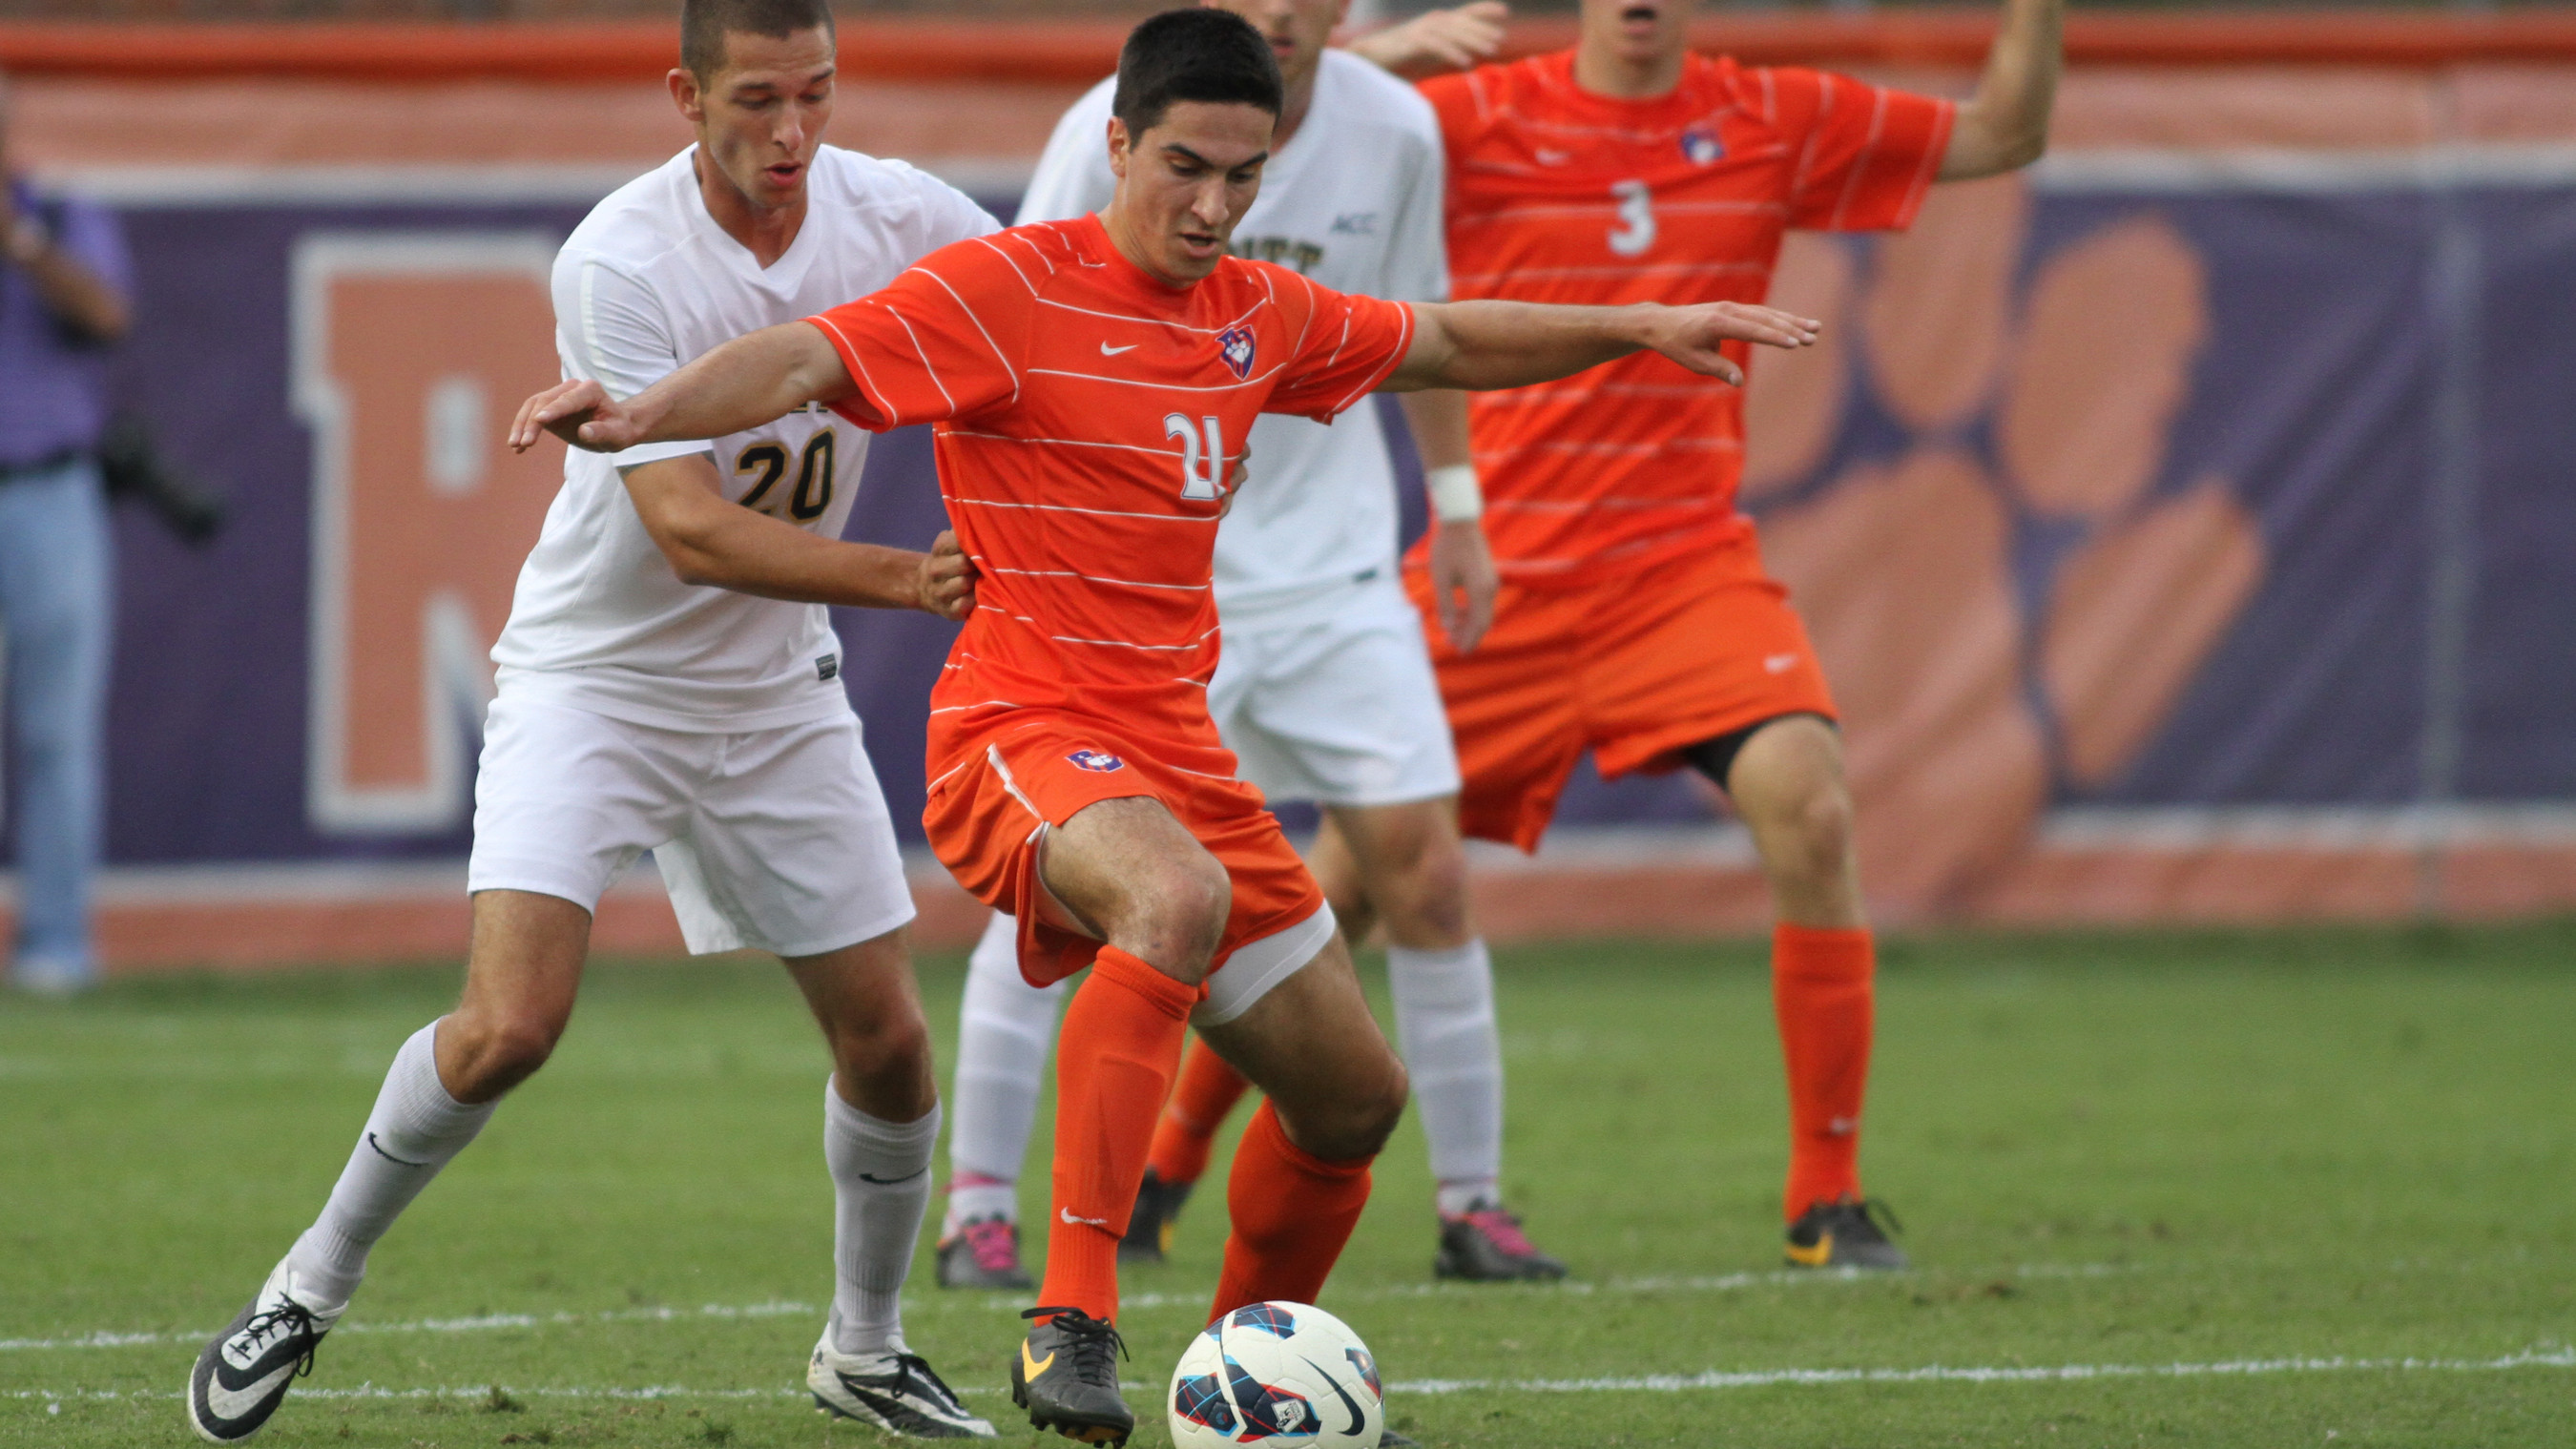 #14 Clemson Will Play Host to Boston College Friday Night